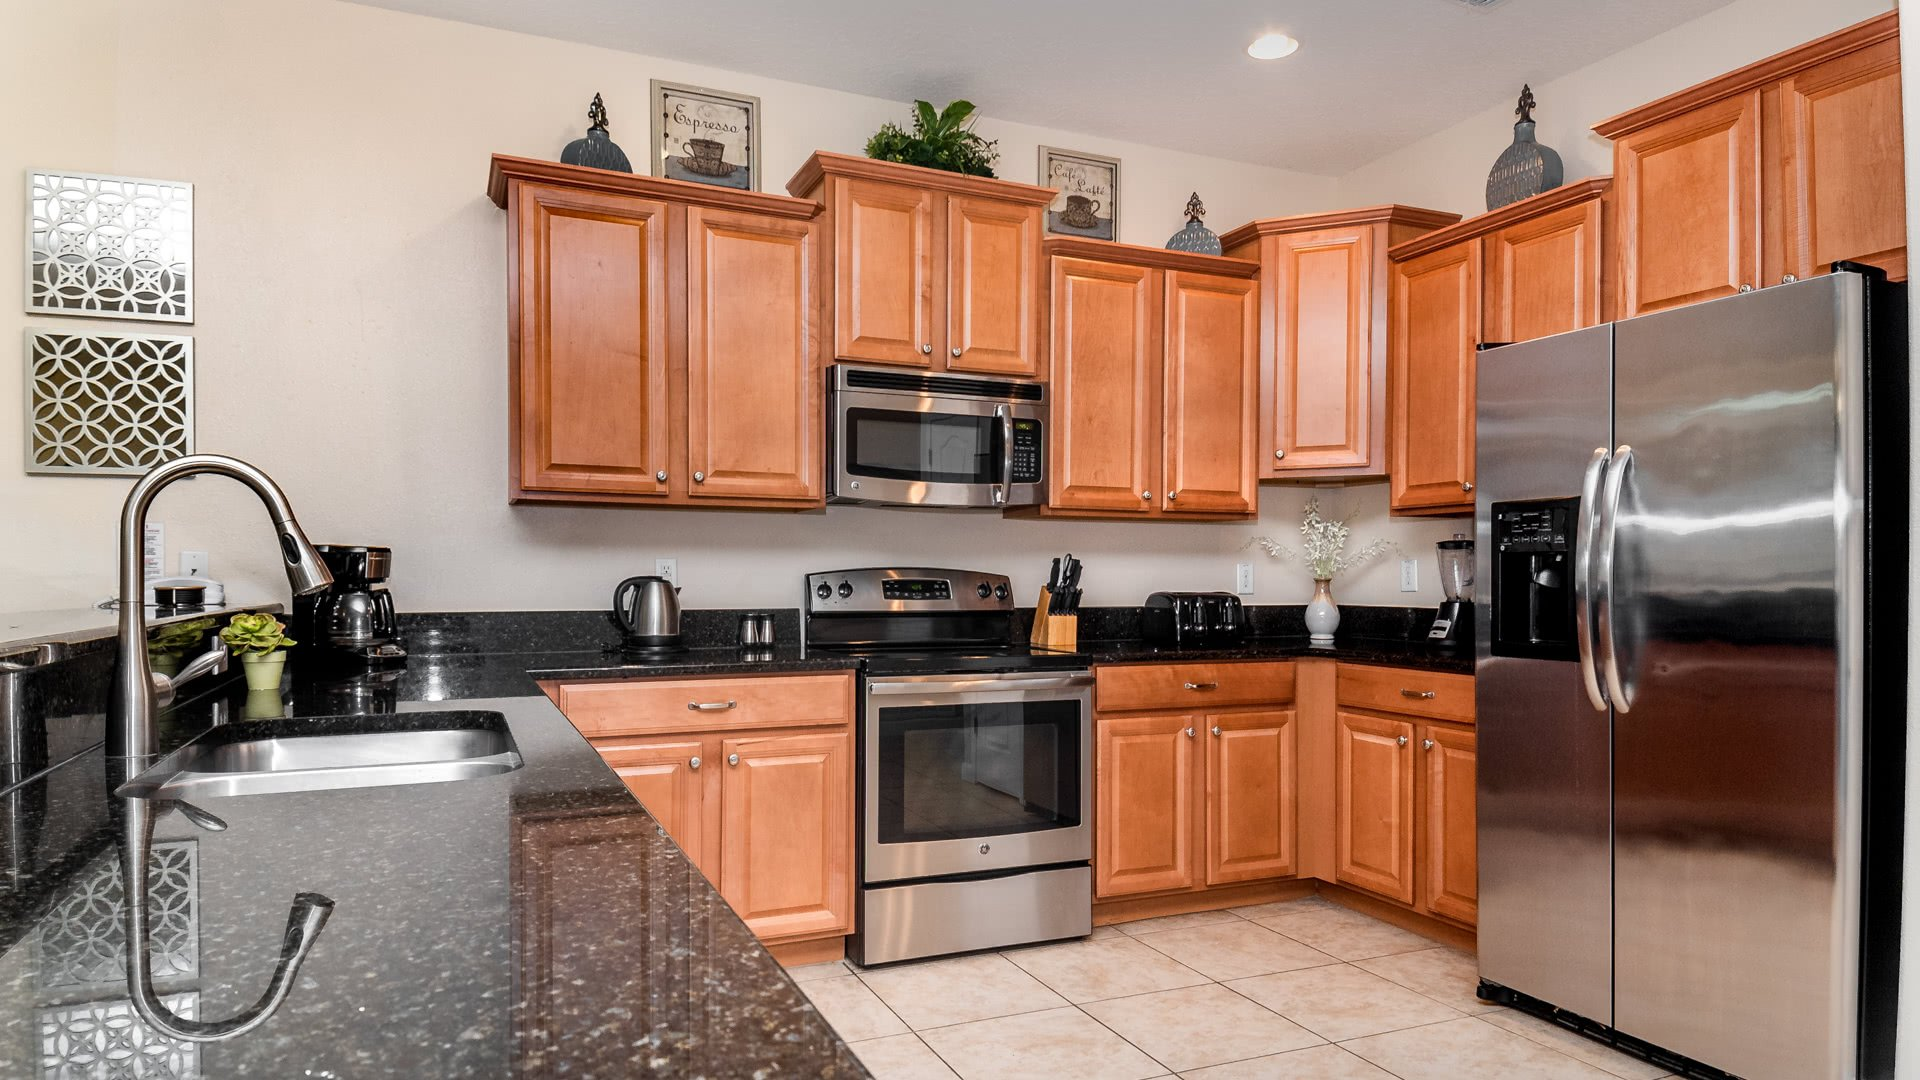 1506 Moon Valley Drive-209958